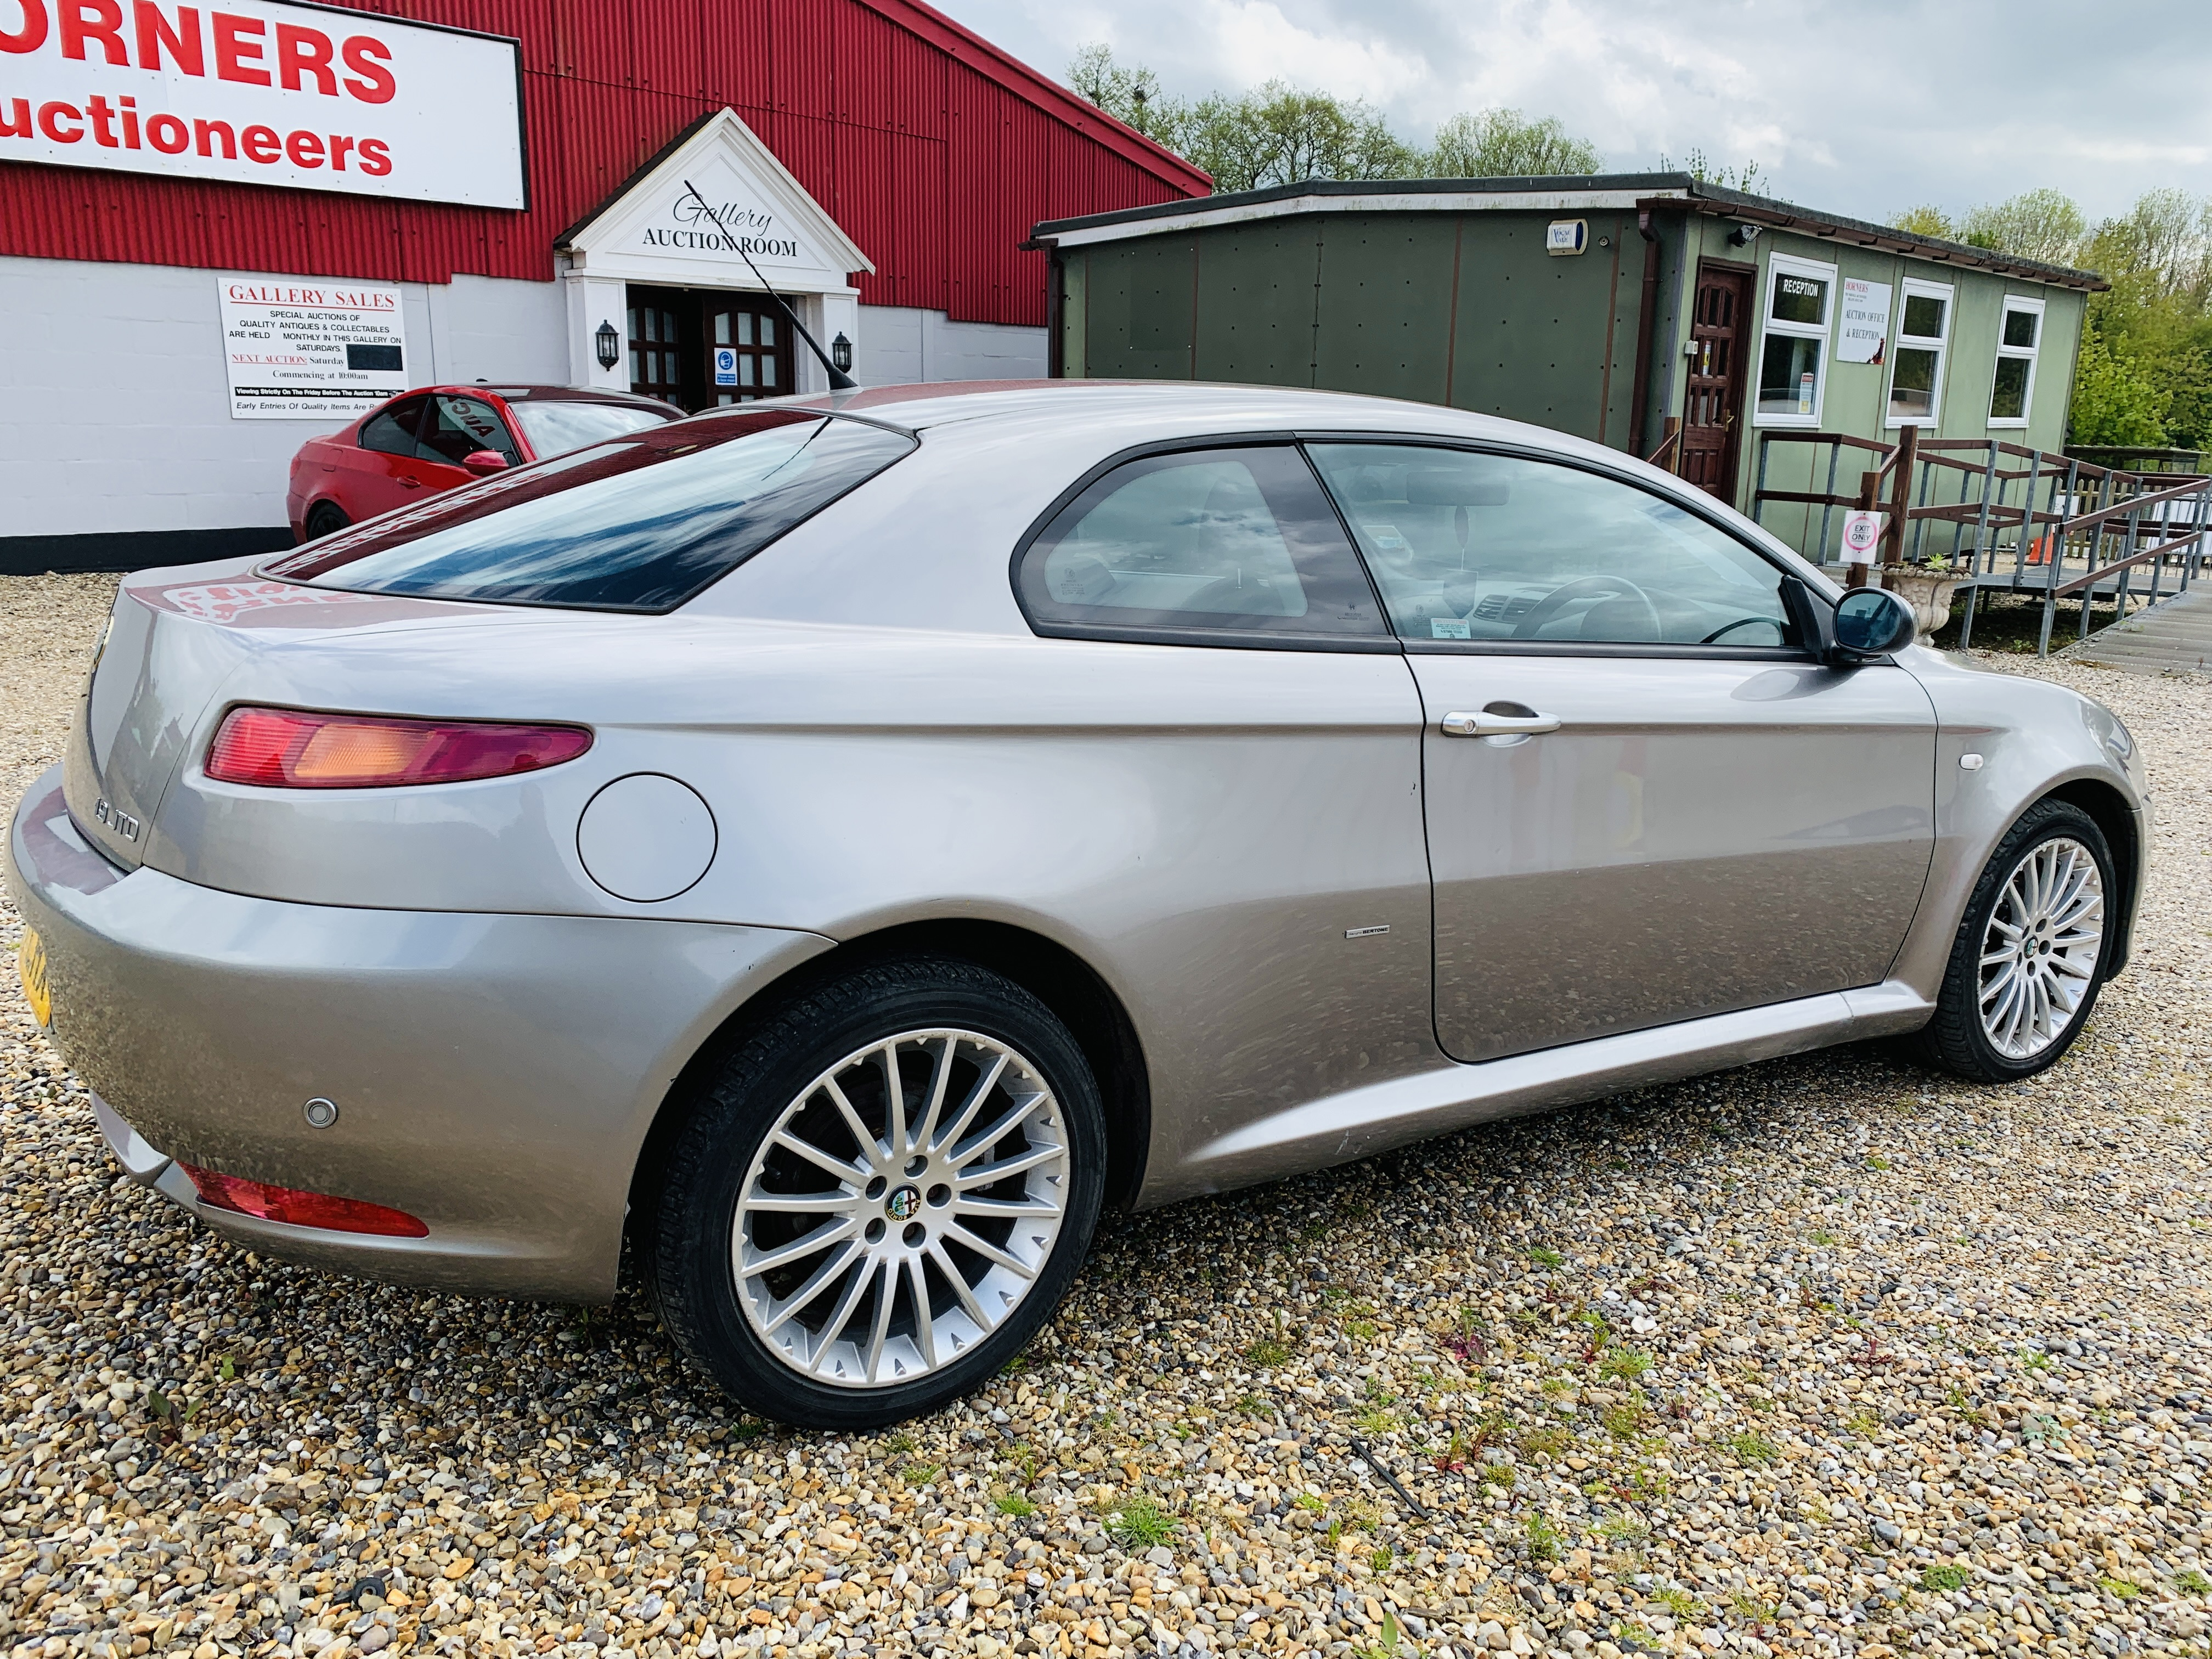 WN57 LHX ALFA ROMEO GT LUSSO JTDM COUPE 1910CC DIESEL. FIRST REGISTERED 29/11/2007. - Image 3 of 12